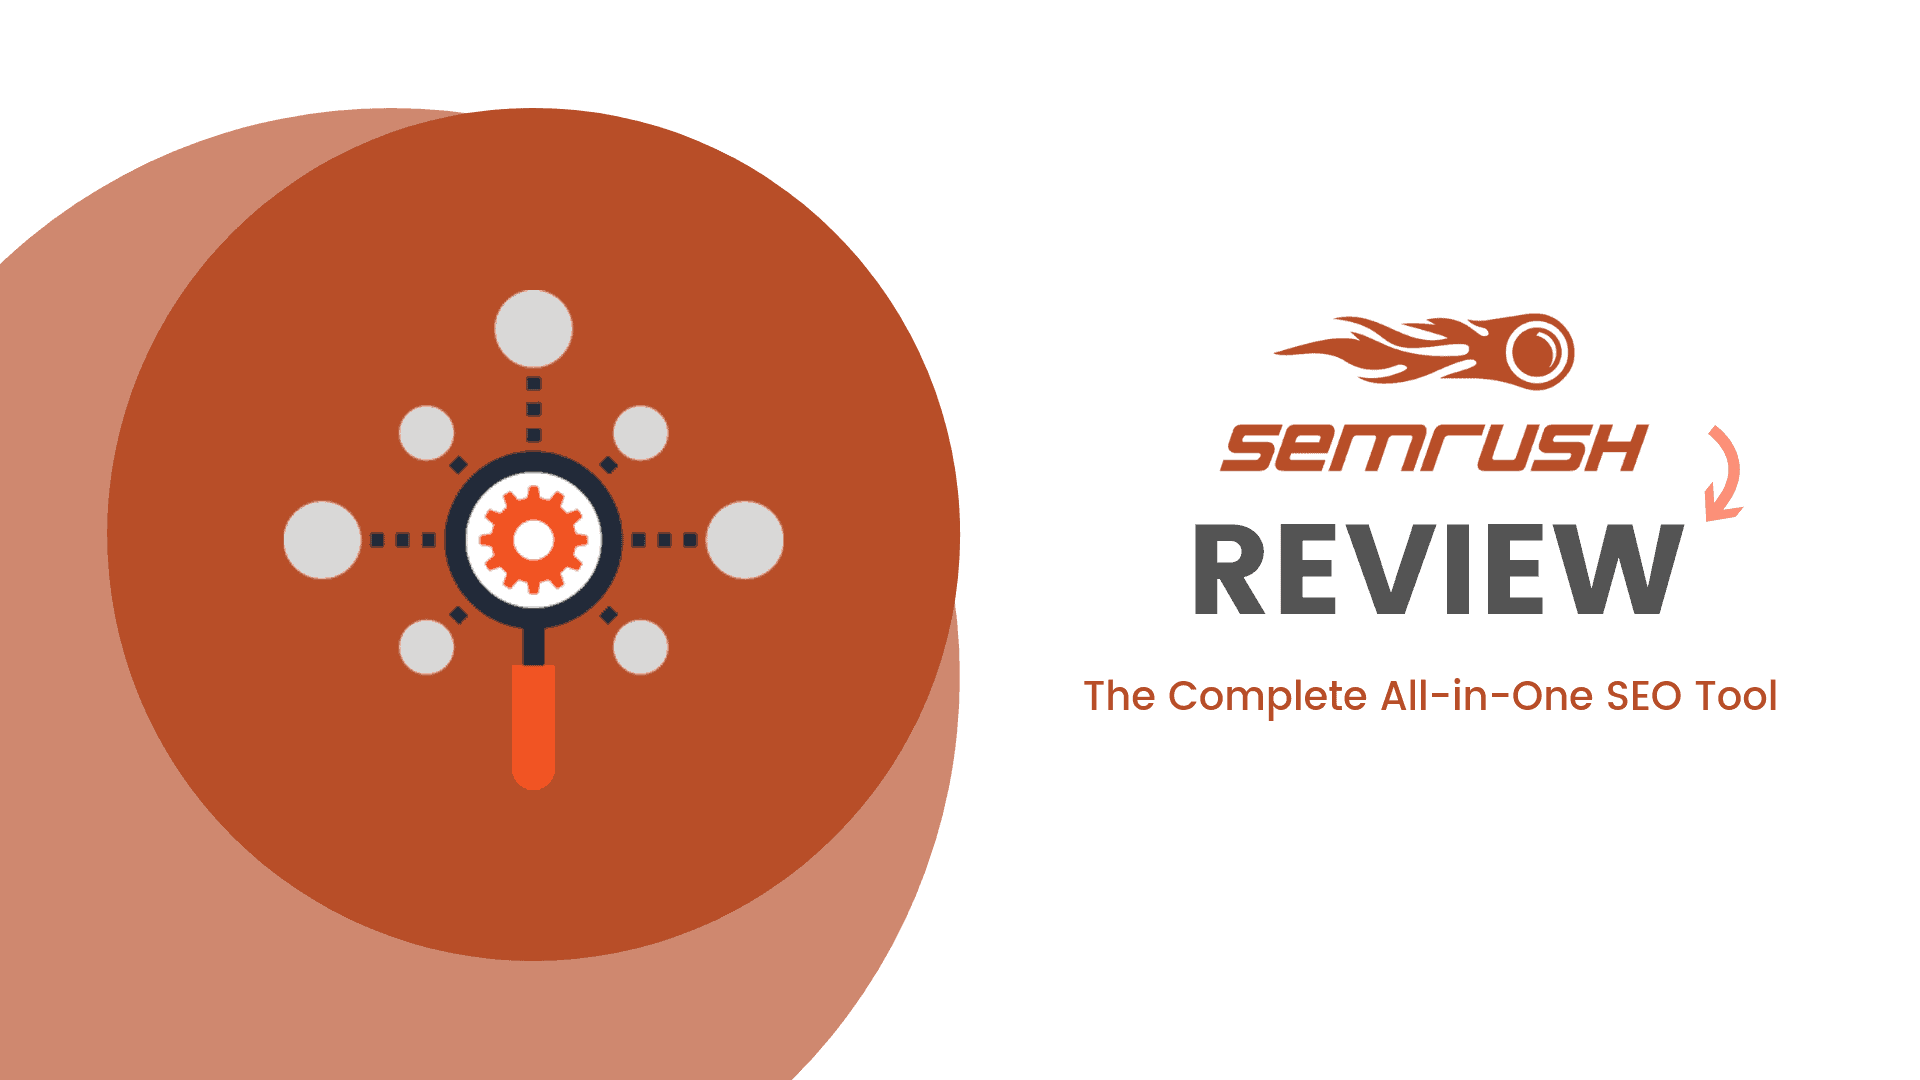 Warranty Abroad Semrush